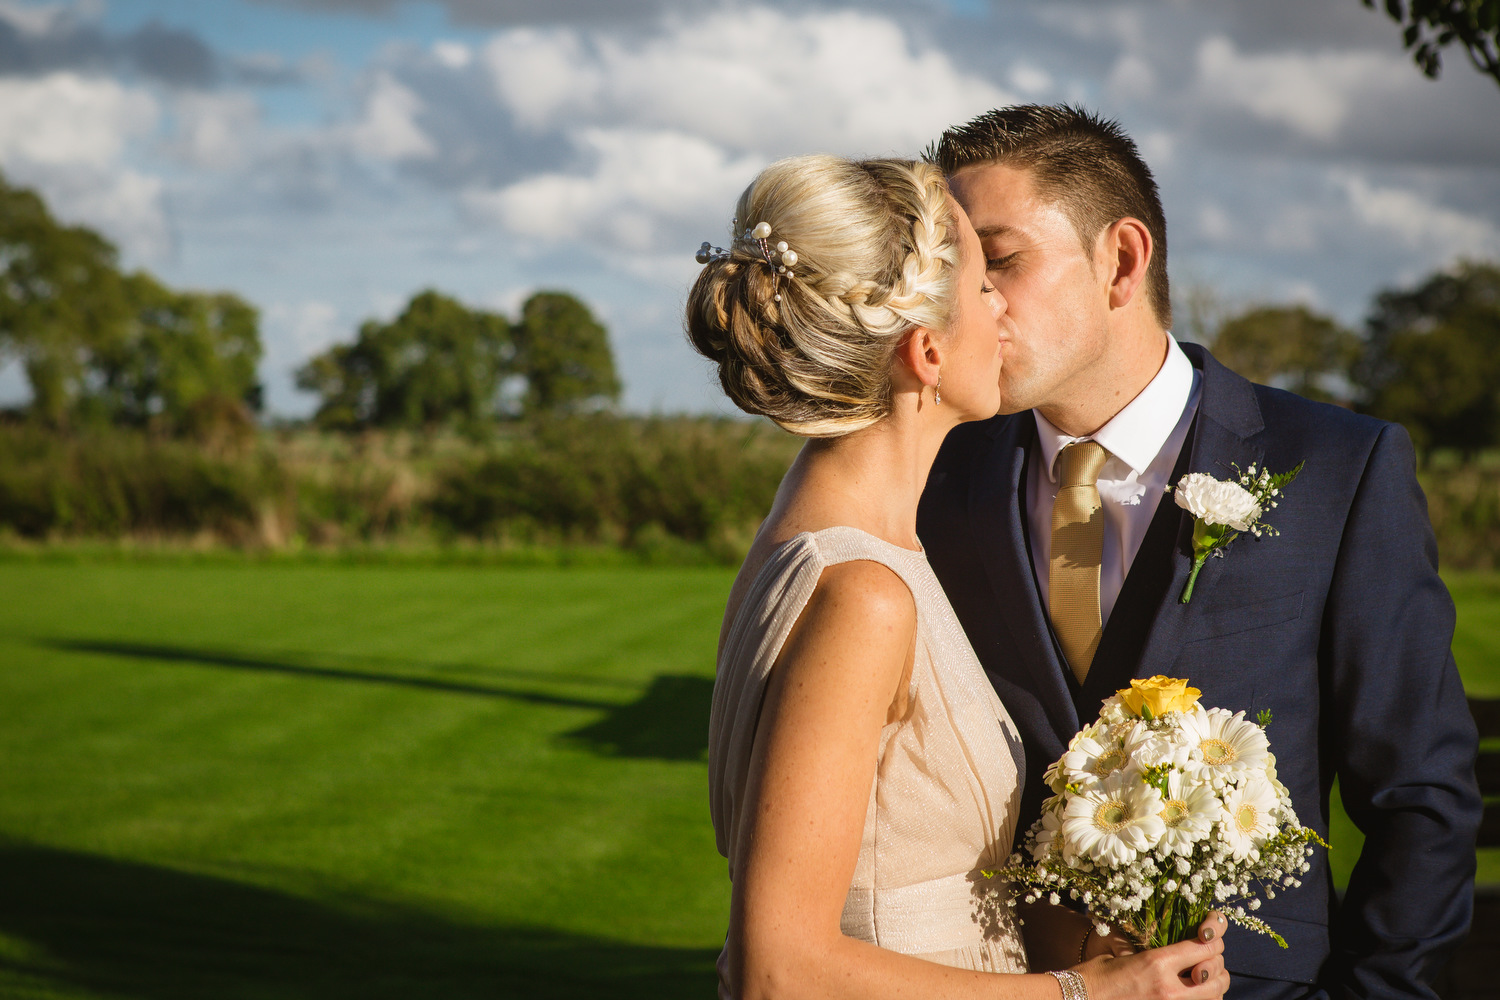 charnwood_weddings_barnsdale_lodge_rutland_dave_j79ane.JPG